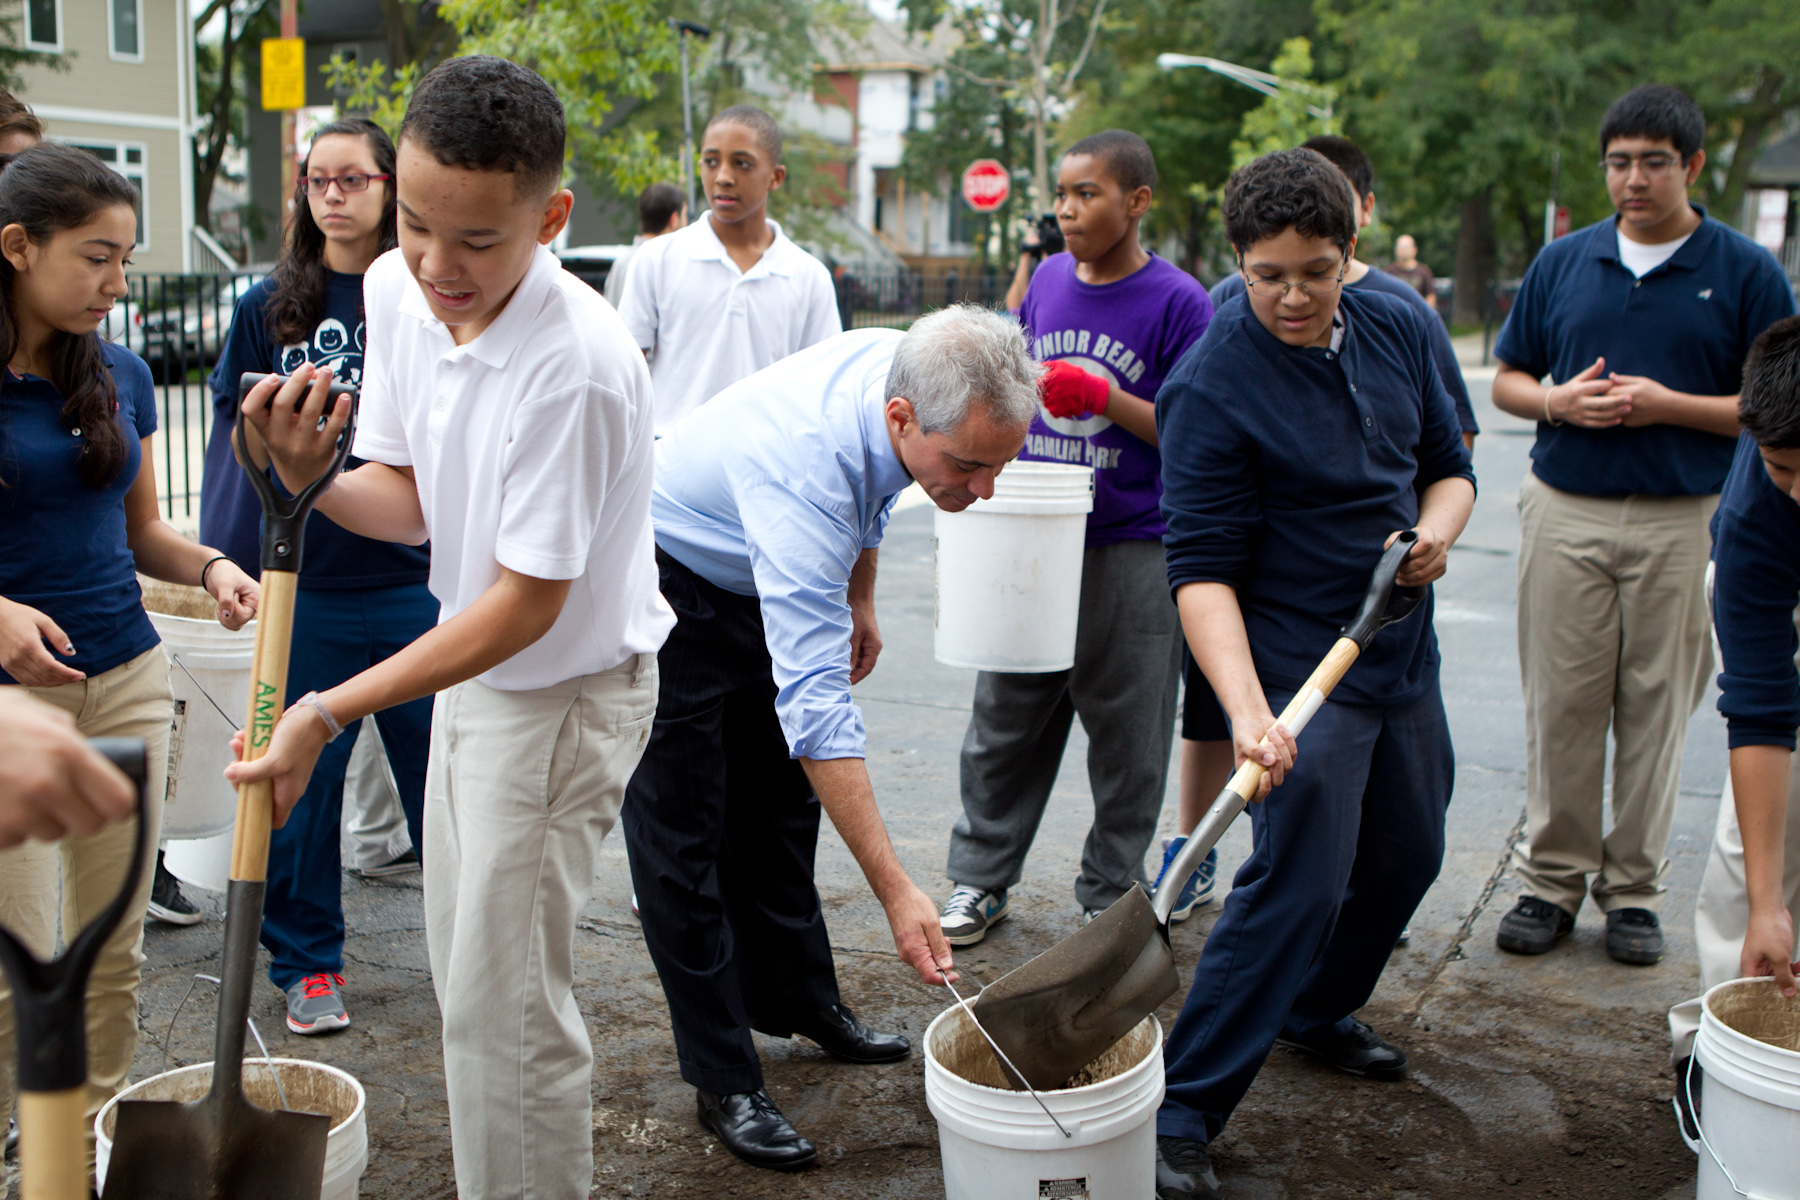 Mayor Emanuel joins students to help build the 75th new learning garden at Friedrich Ludwig Jahn Elementary School.